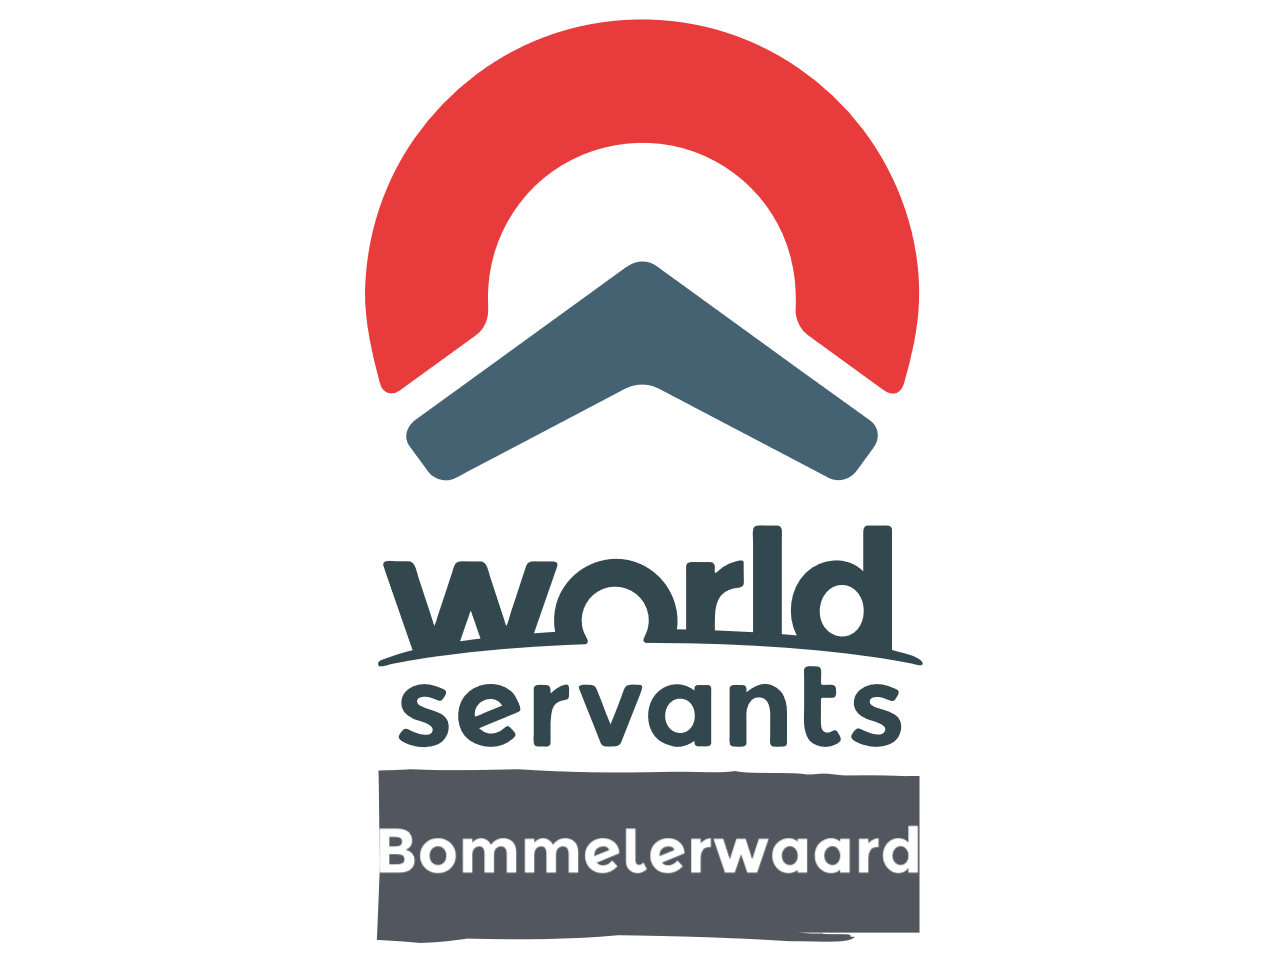 worldservants-bommelerwaard